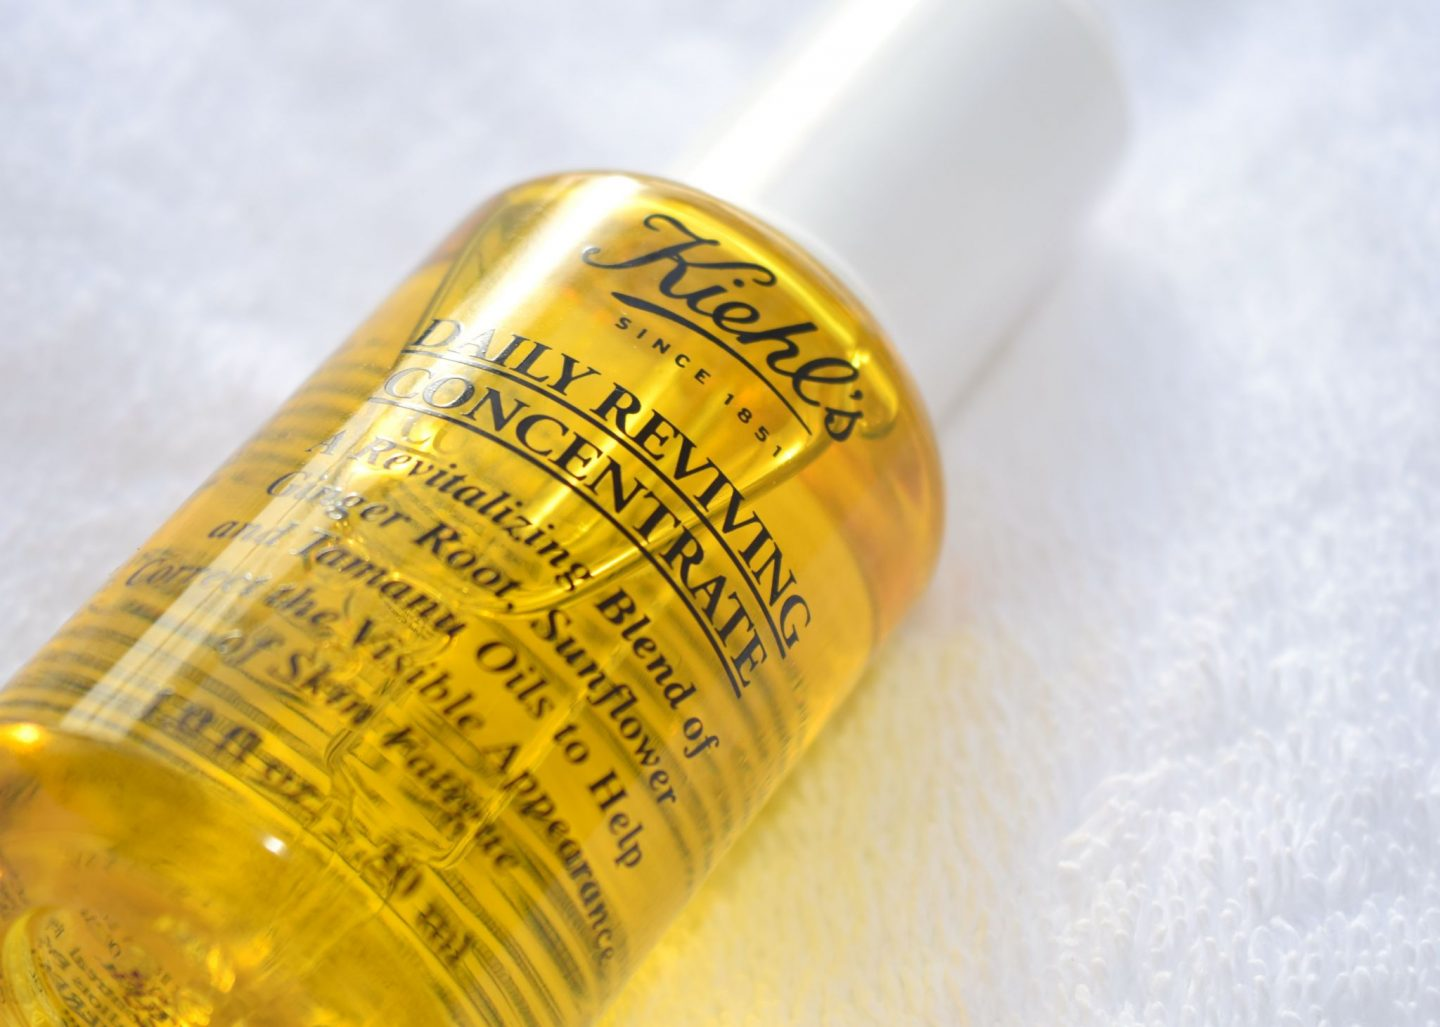 Kiehl's Daily Reviving Concentrate 2